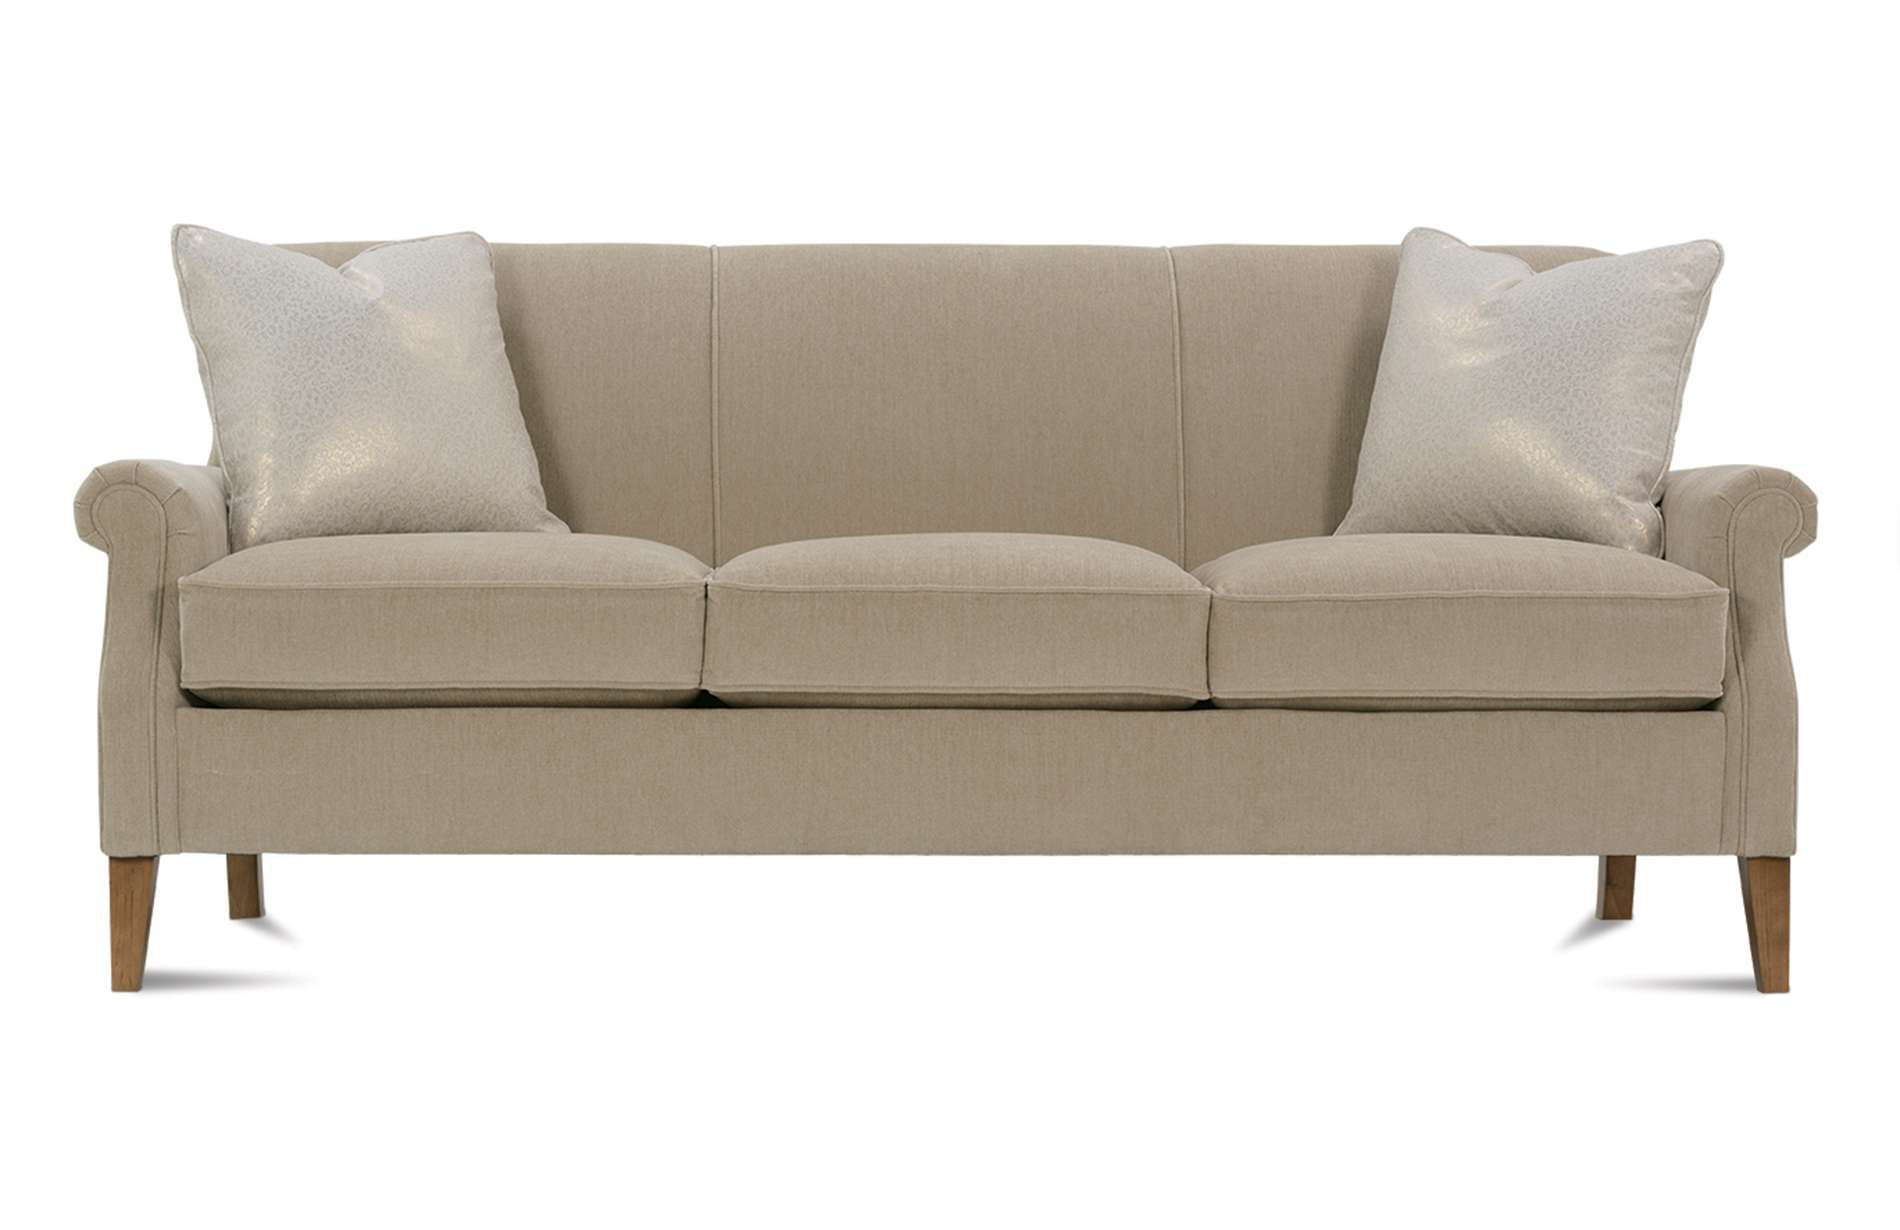 Channing Sofa  Rowe Furniture  Rowe Furniture